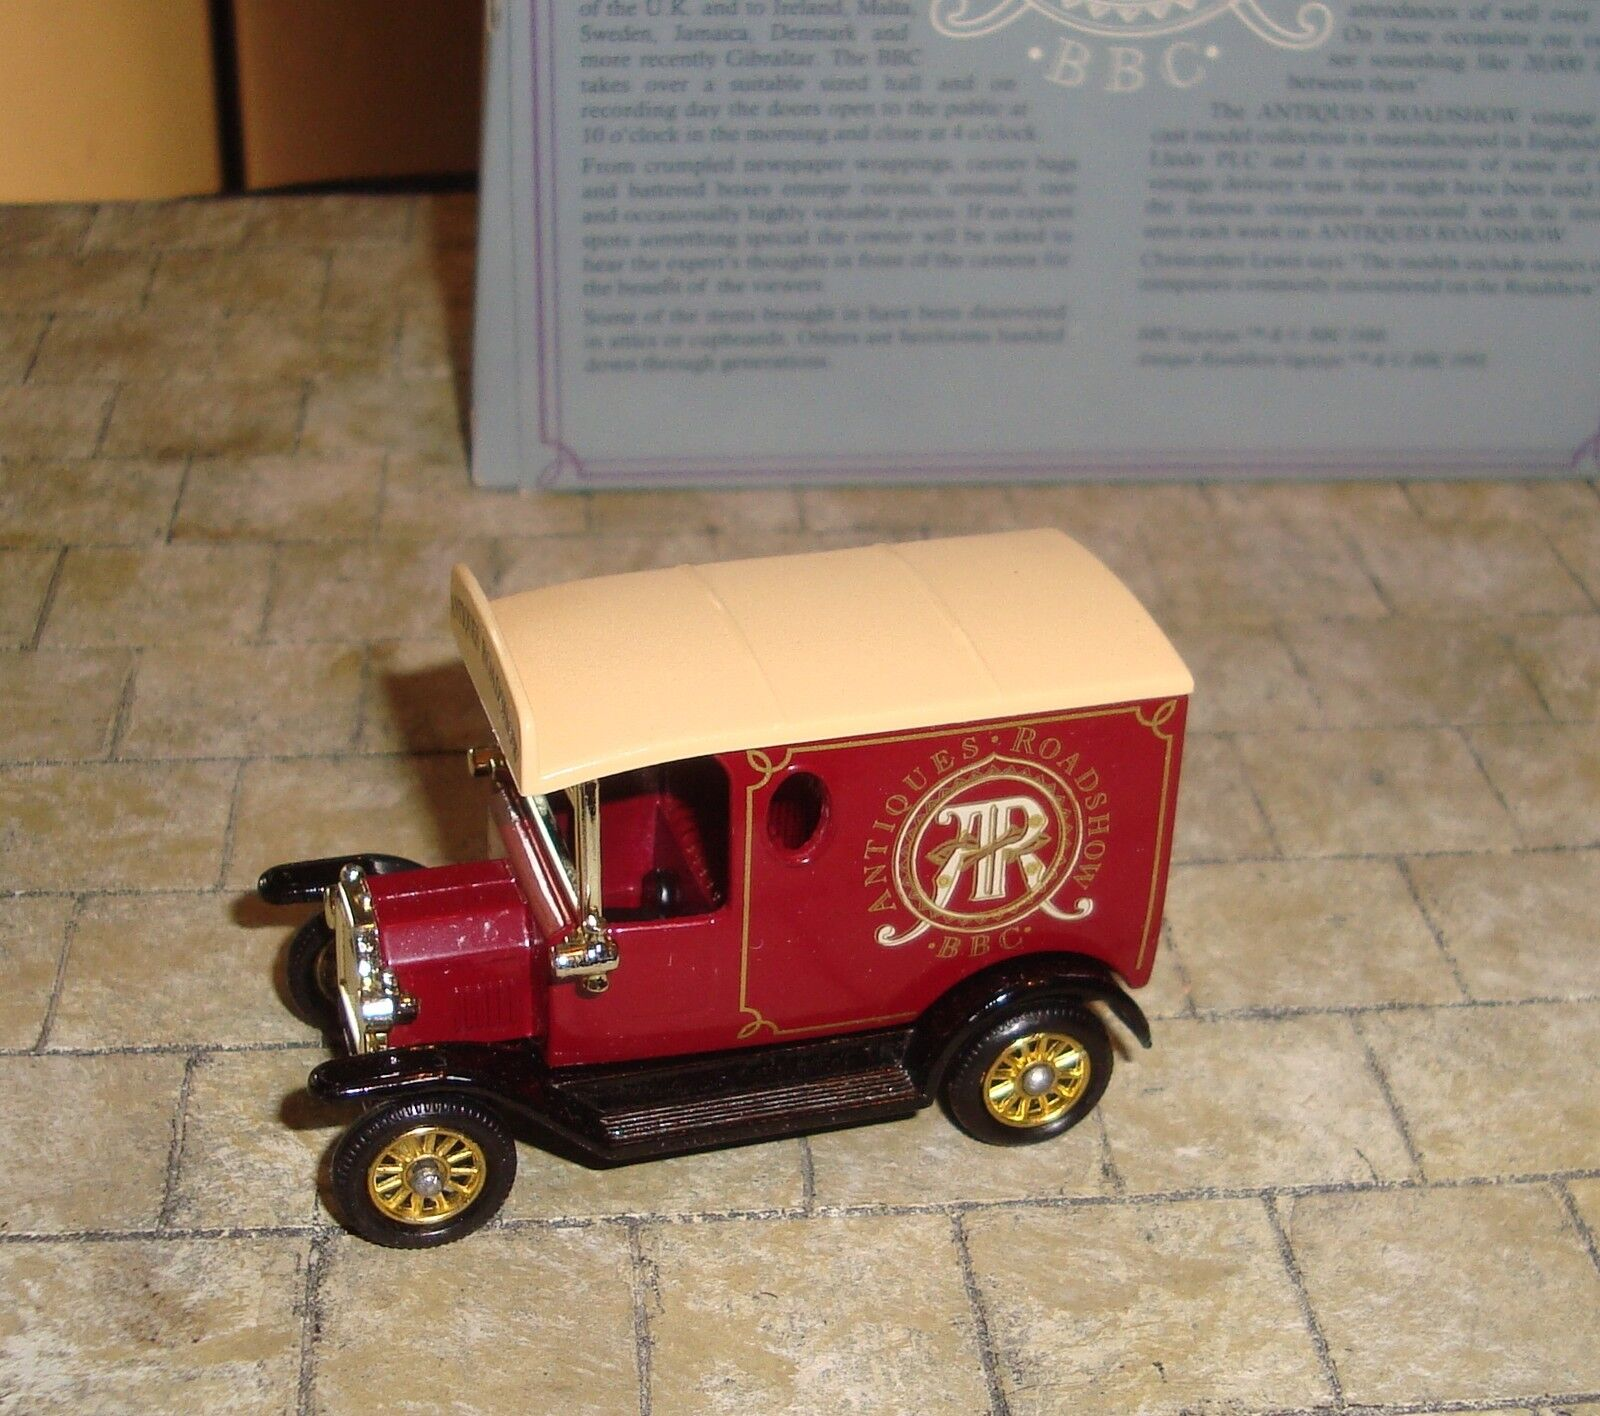 4f34e4db1e Lledo - Promo - 1920 Model T Ford Van - Bbc Antiques Roadshow - Mint   1  sur 4Seulement 1 disponible ...